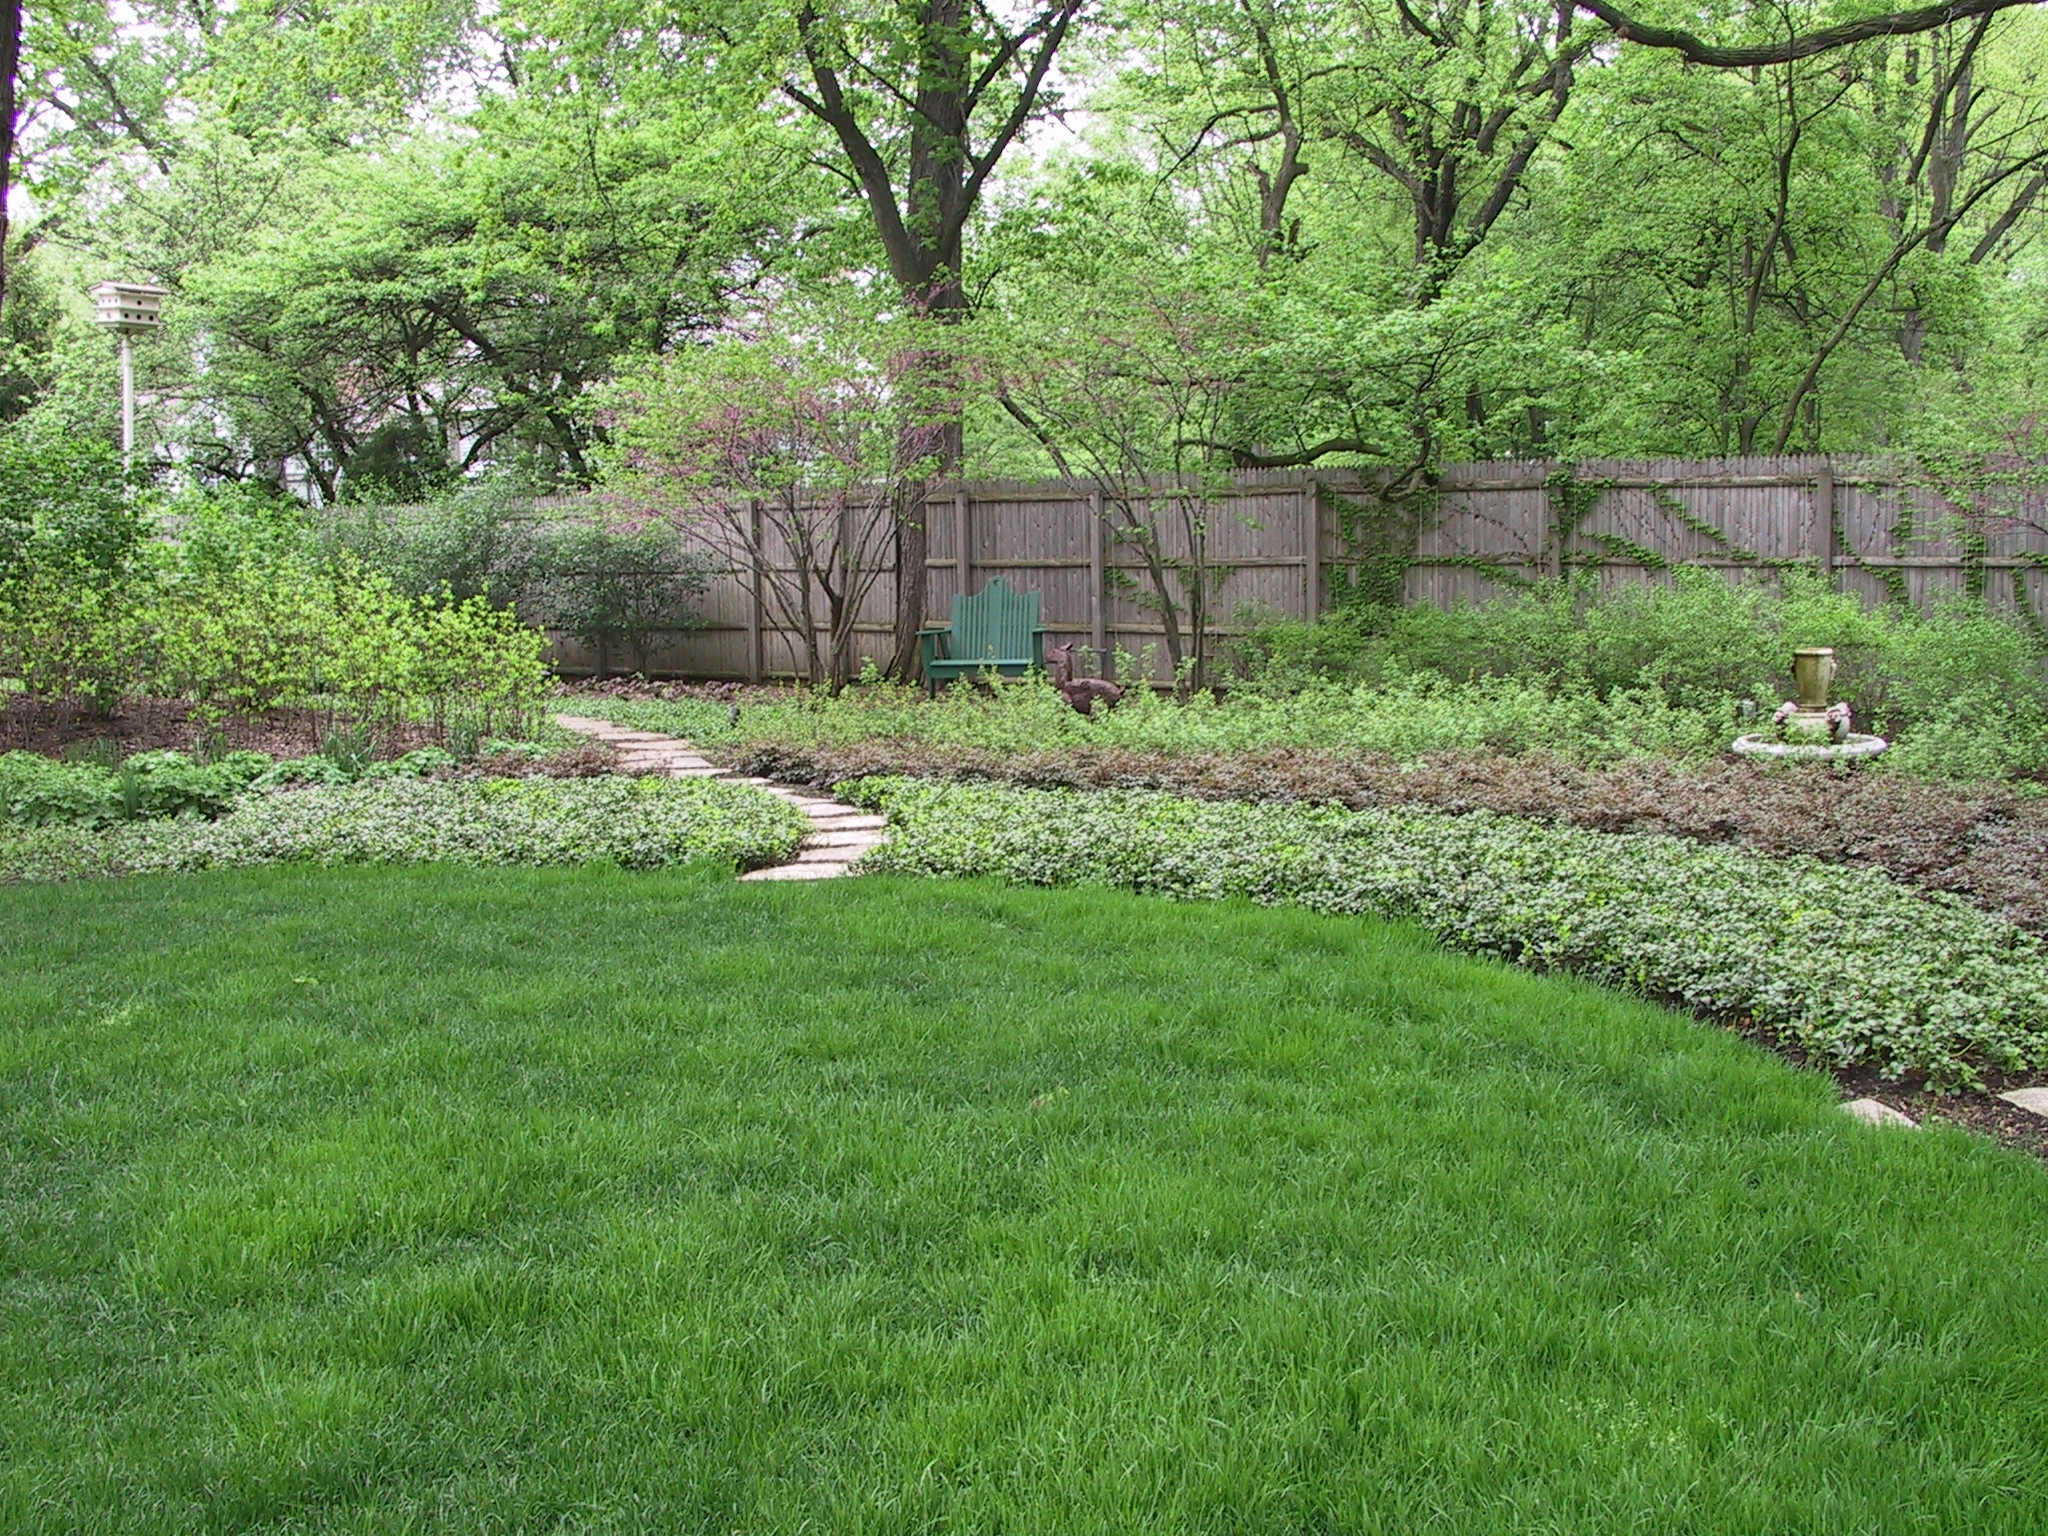 Backyard Clean Up Lawn And Yard Clean Up Arlington Heights Archives Schmechtig